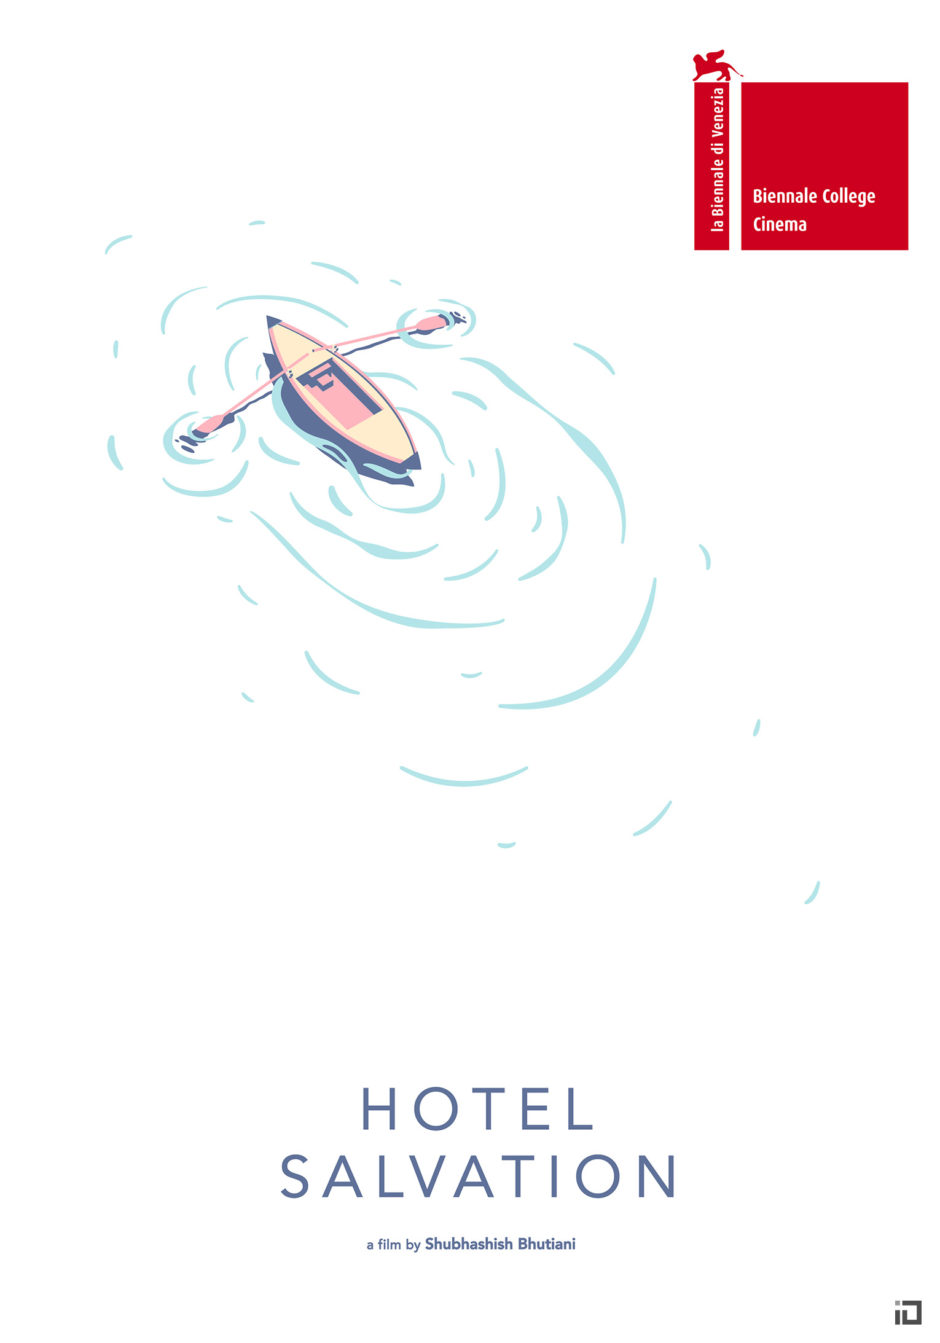 Hotel Salvation official iconograhic poster